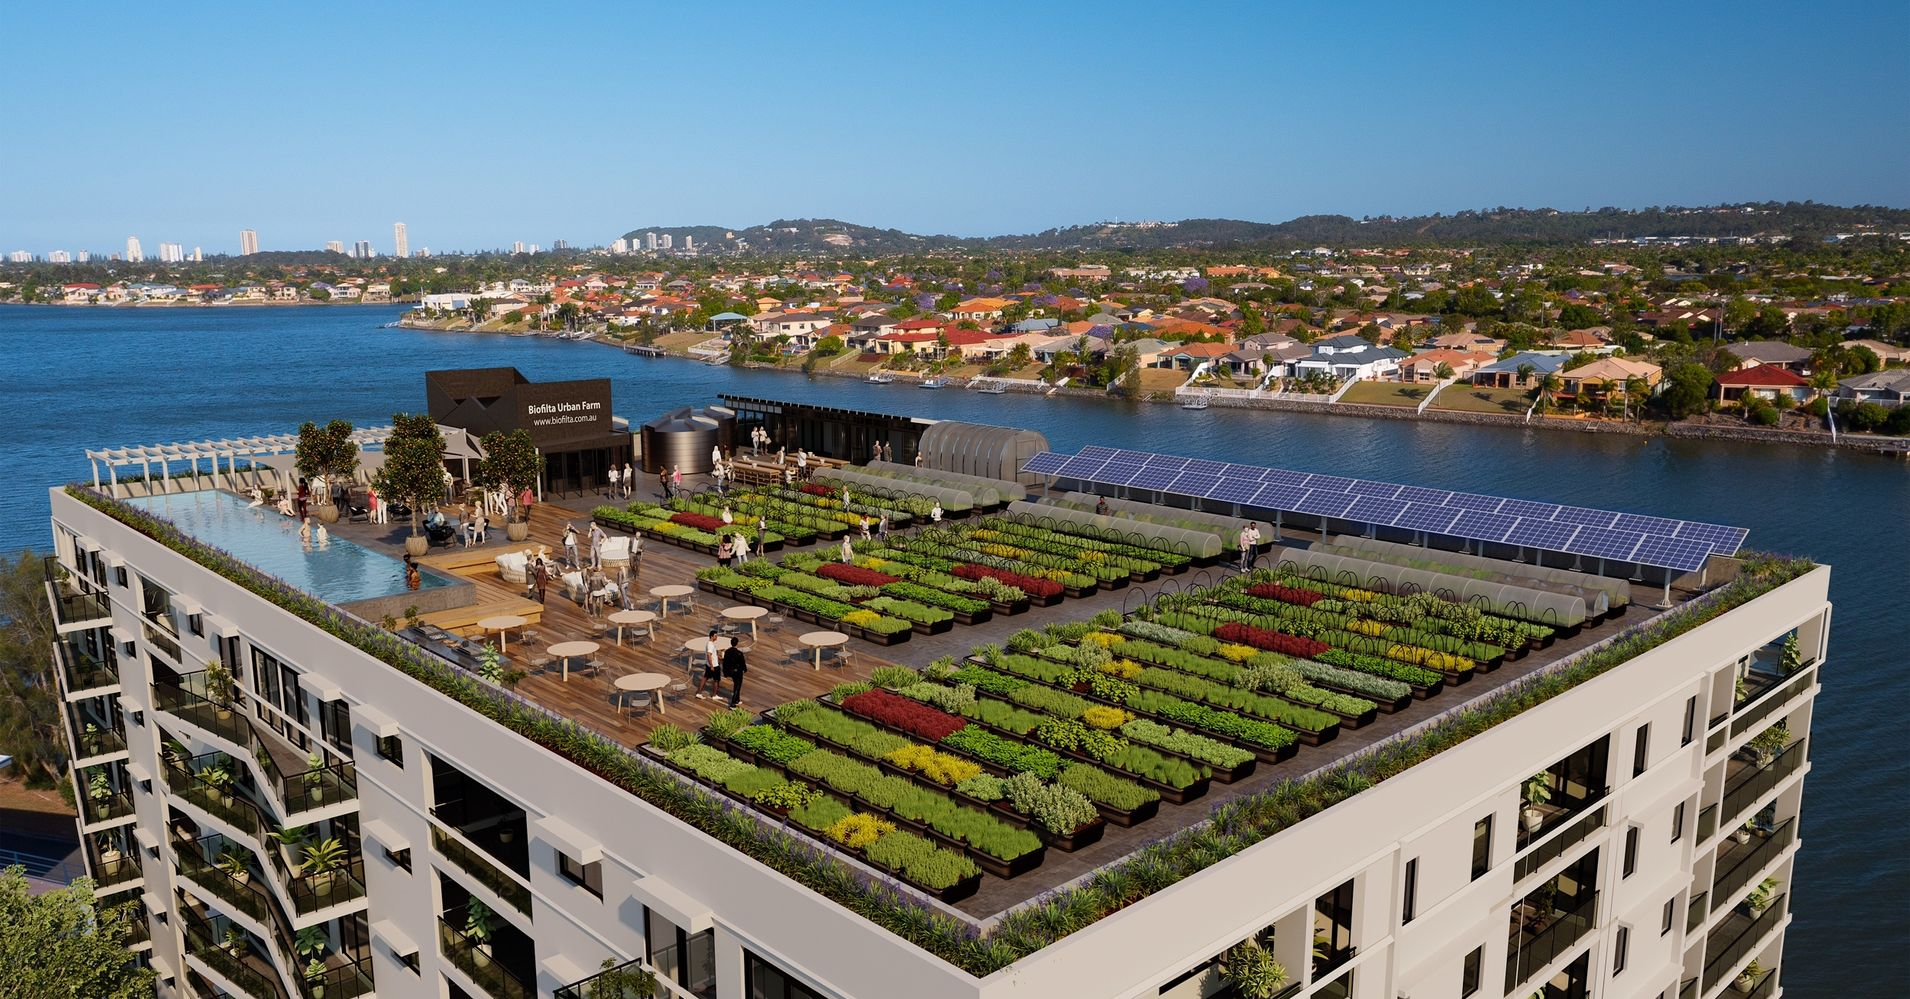 urban rooftop farm powered by rainwater and composted food waste huffpost. Black Bedroom Furniture Sets. Home Design Ideas